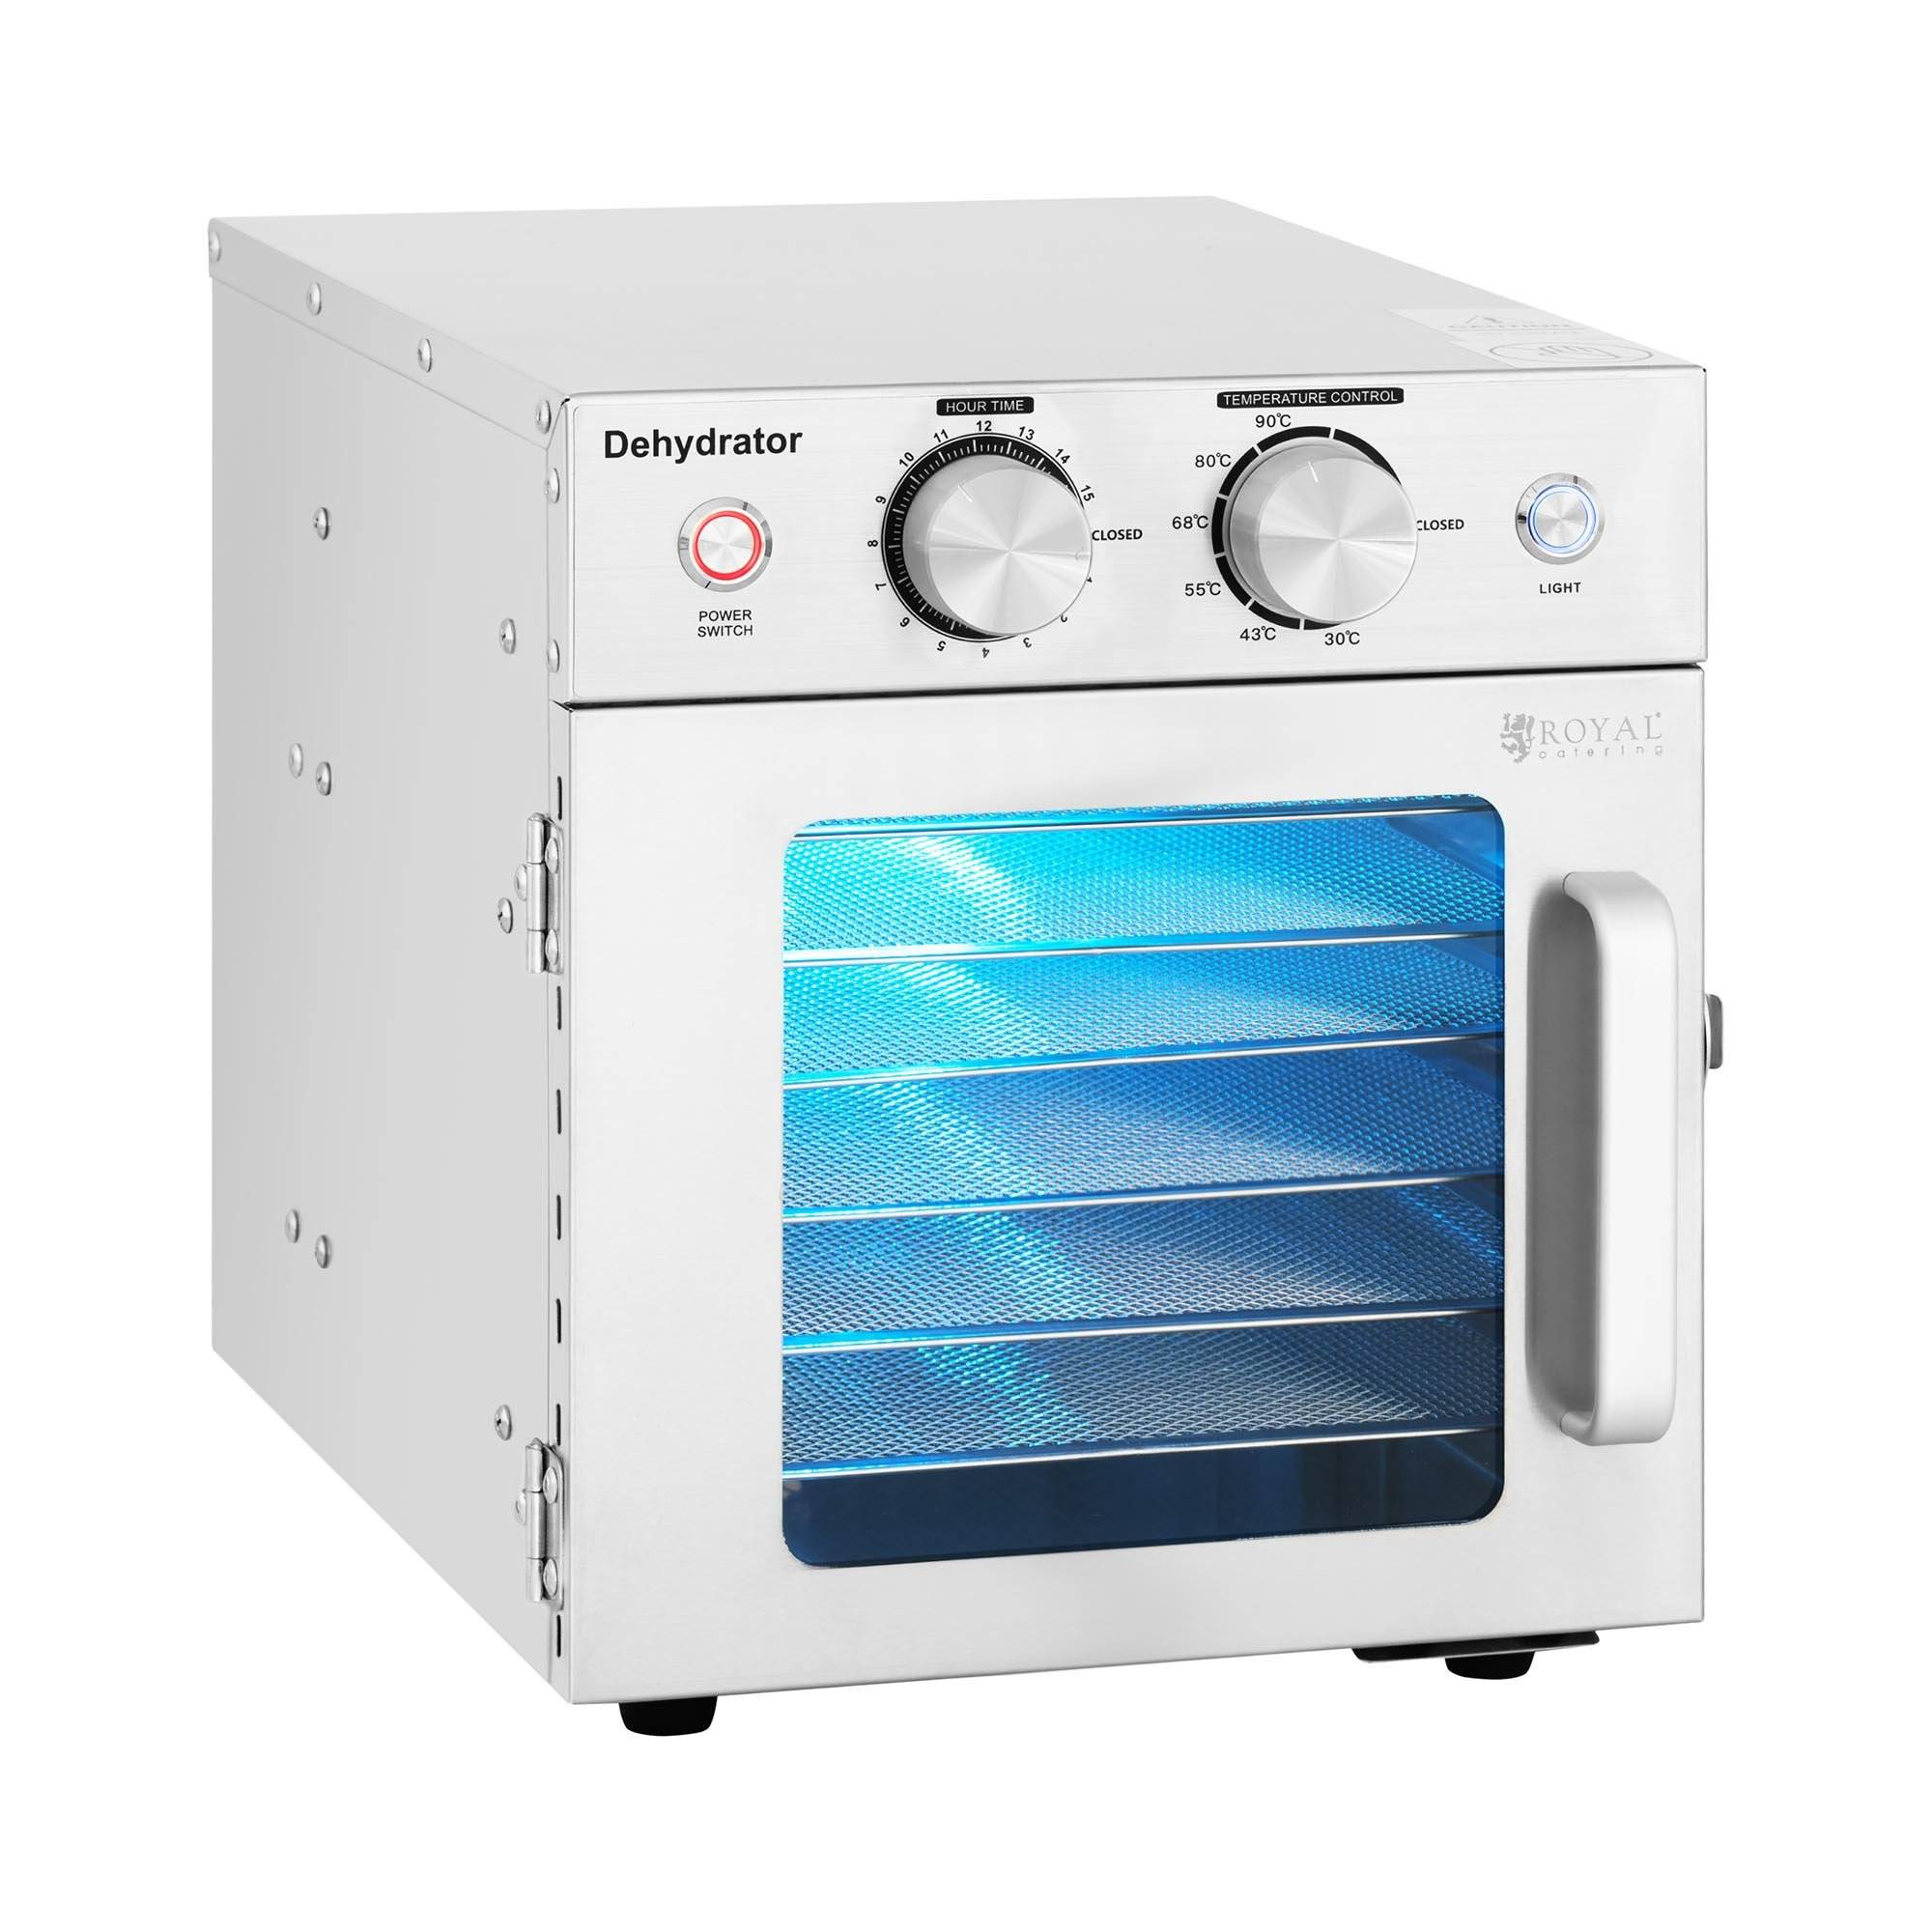 Royal Catering Déshydrateur alimentaire - 500 W - Royal Catering - 6 étages RCDA-15S